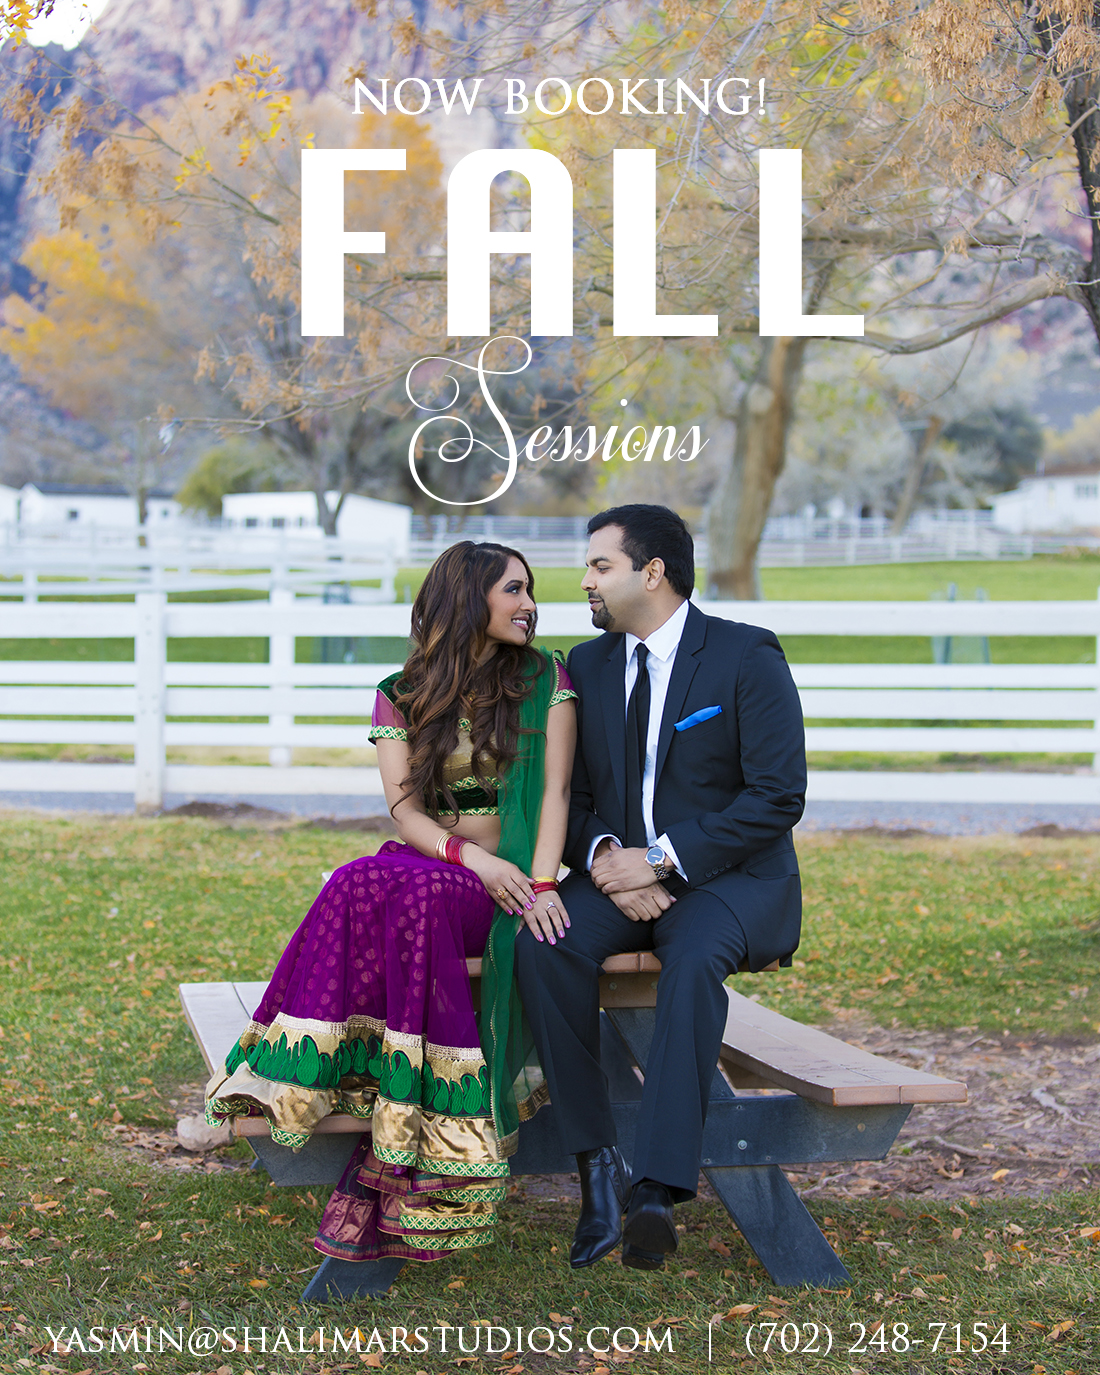 fall-sessions-graphic-2016_mg_1867tr_blog